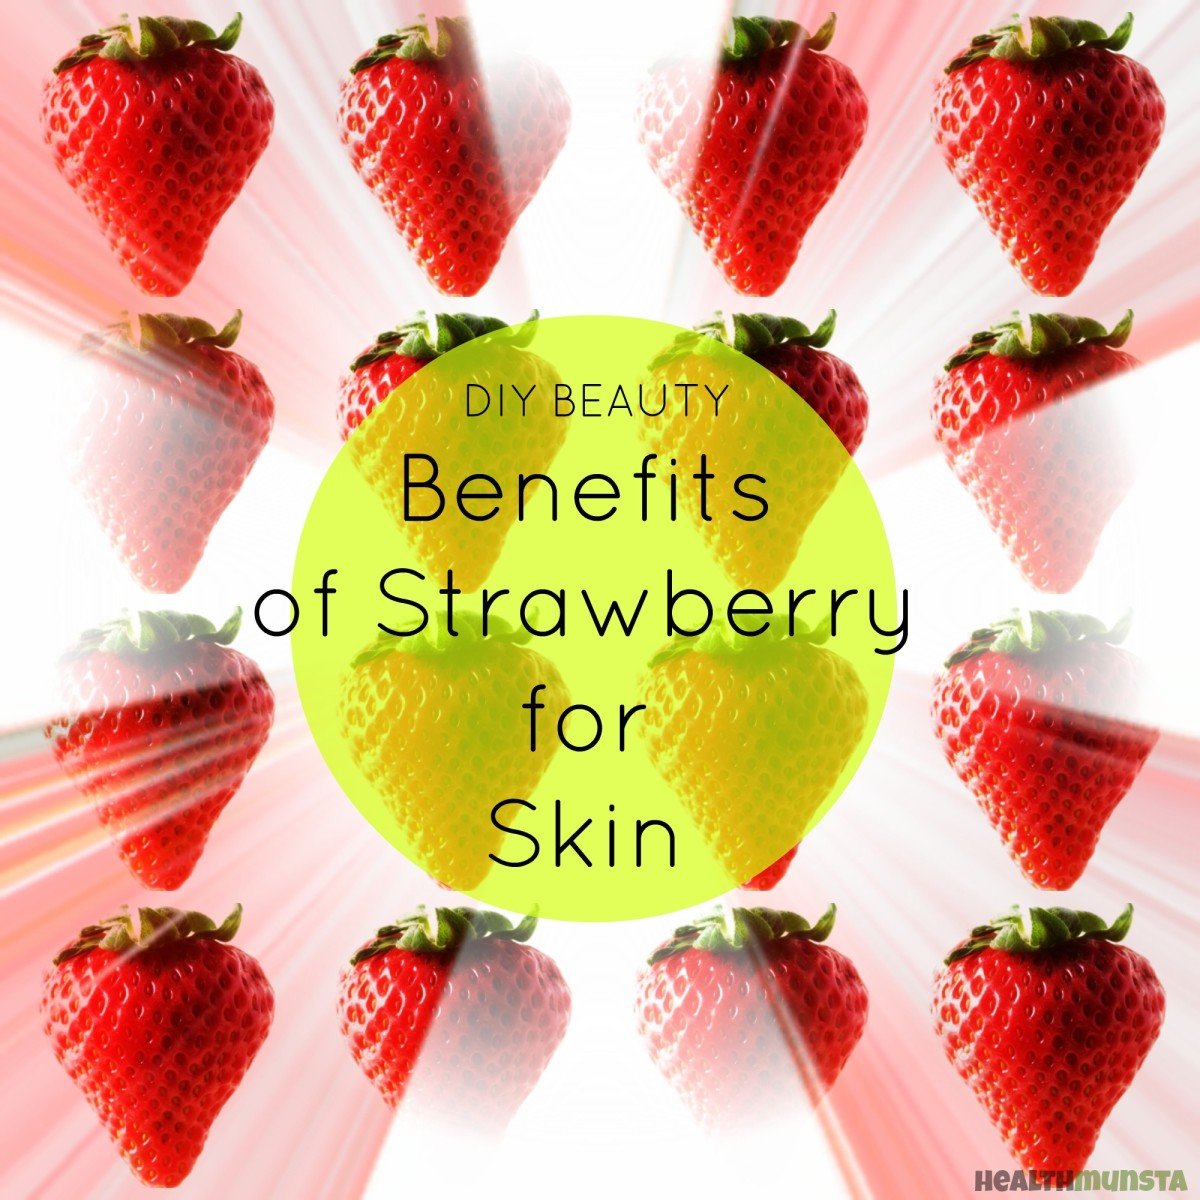 Top 5 Benefits of Strawberry for Skin